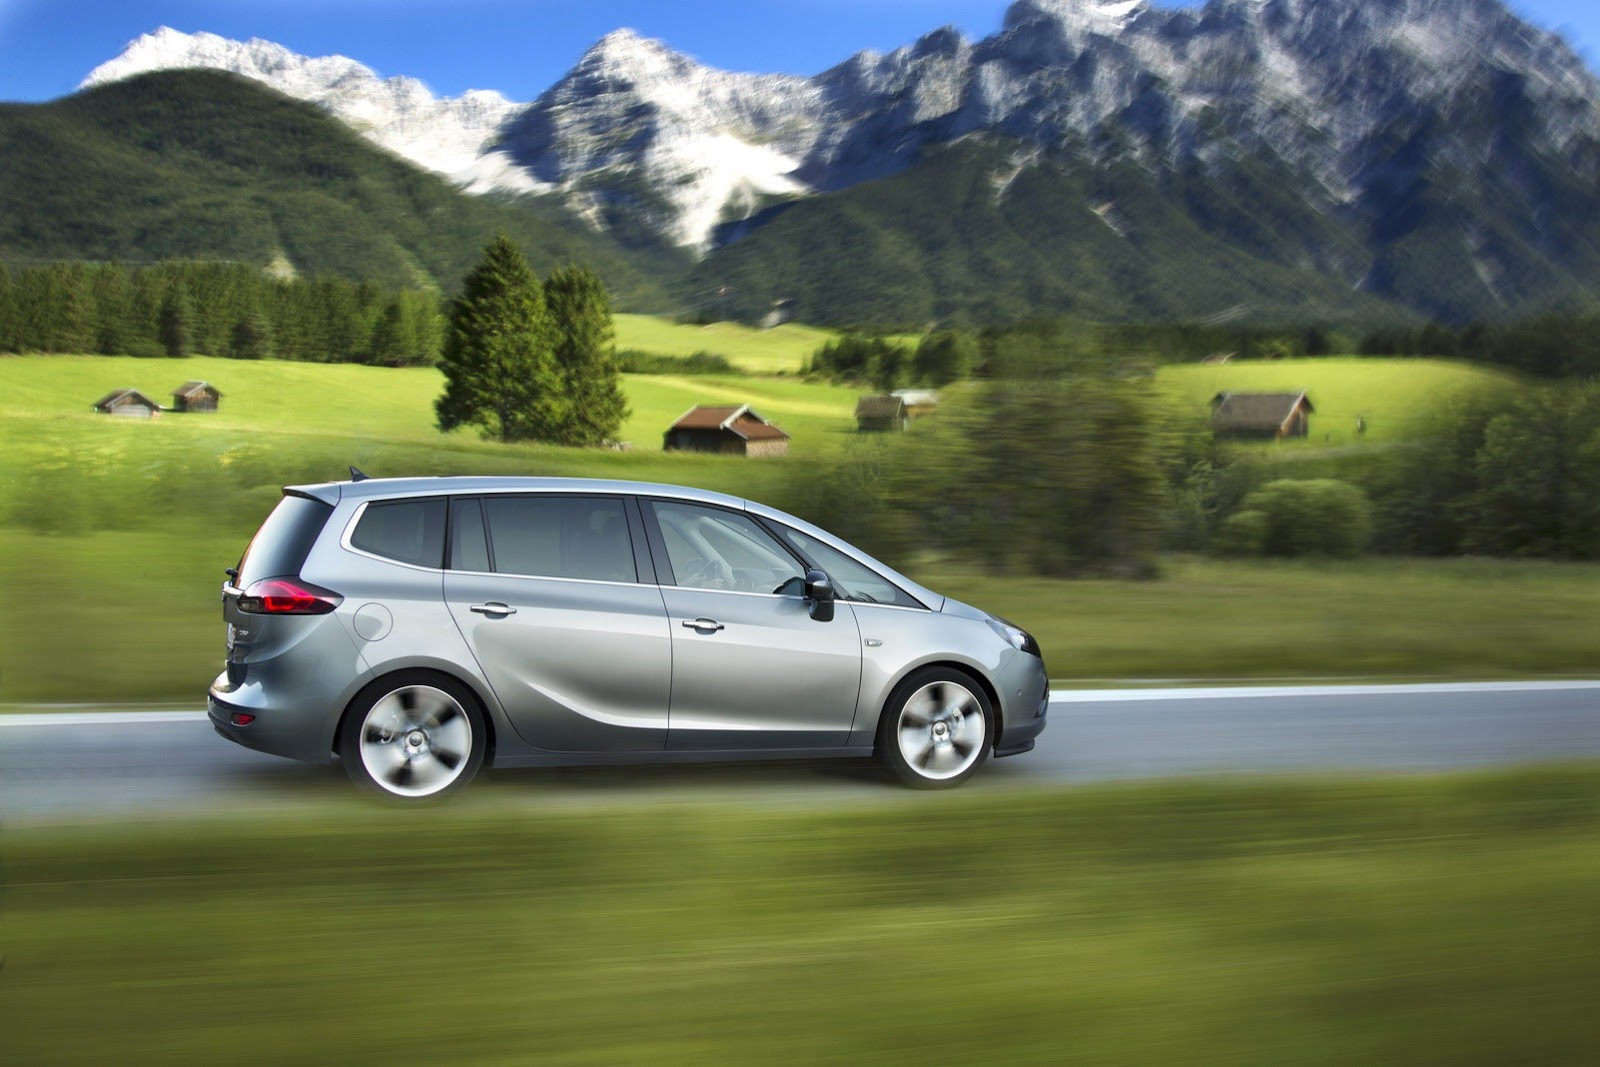 Opel-Vauxhall Zafira New Diesel Engine - 2